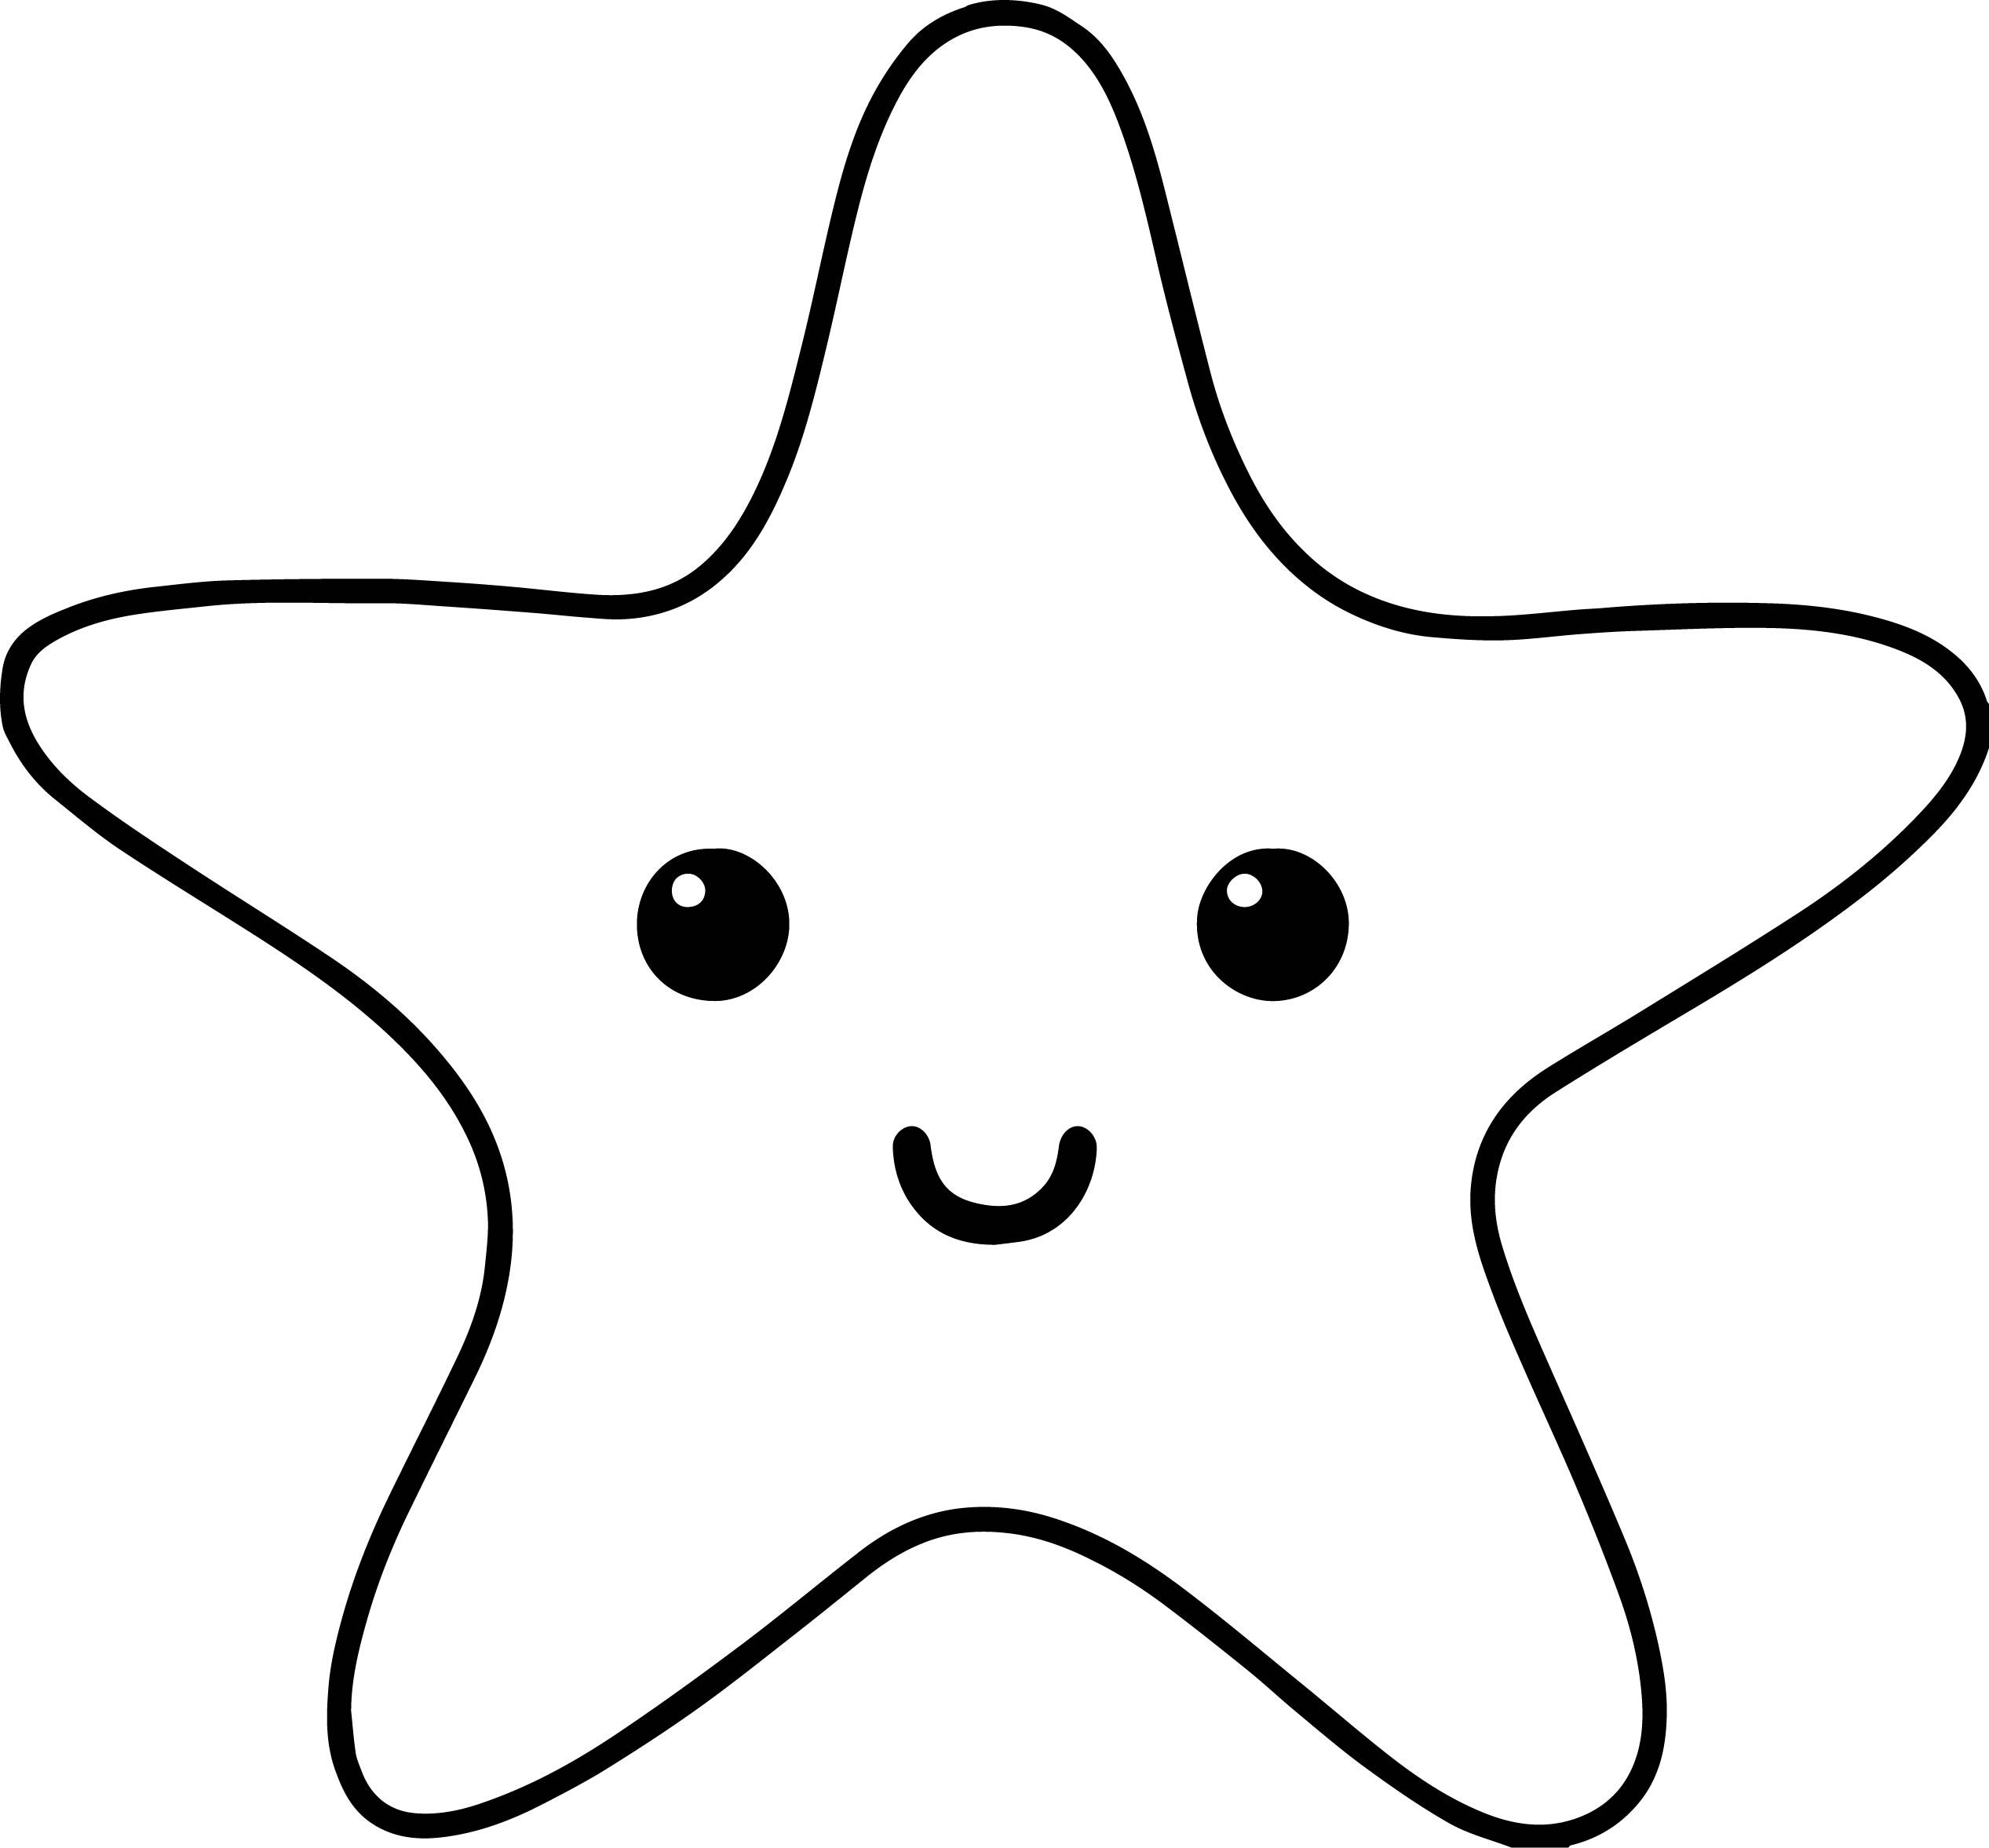 Sea Creatures Coloring Pages Starfish Sea Creatures Coloring Page Wecoloringpage Albanysinsanity Com Fish Coloring Page Star Coloring Pages Starfish Drawing